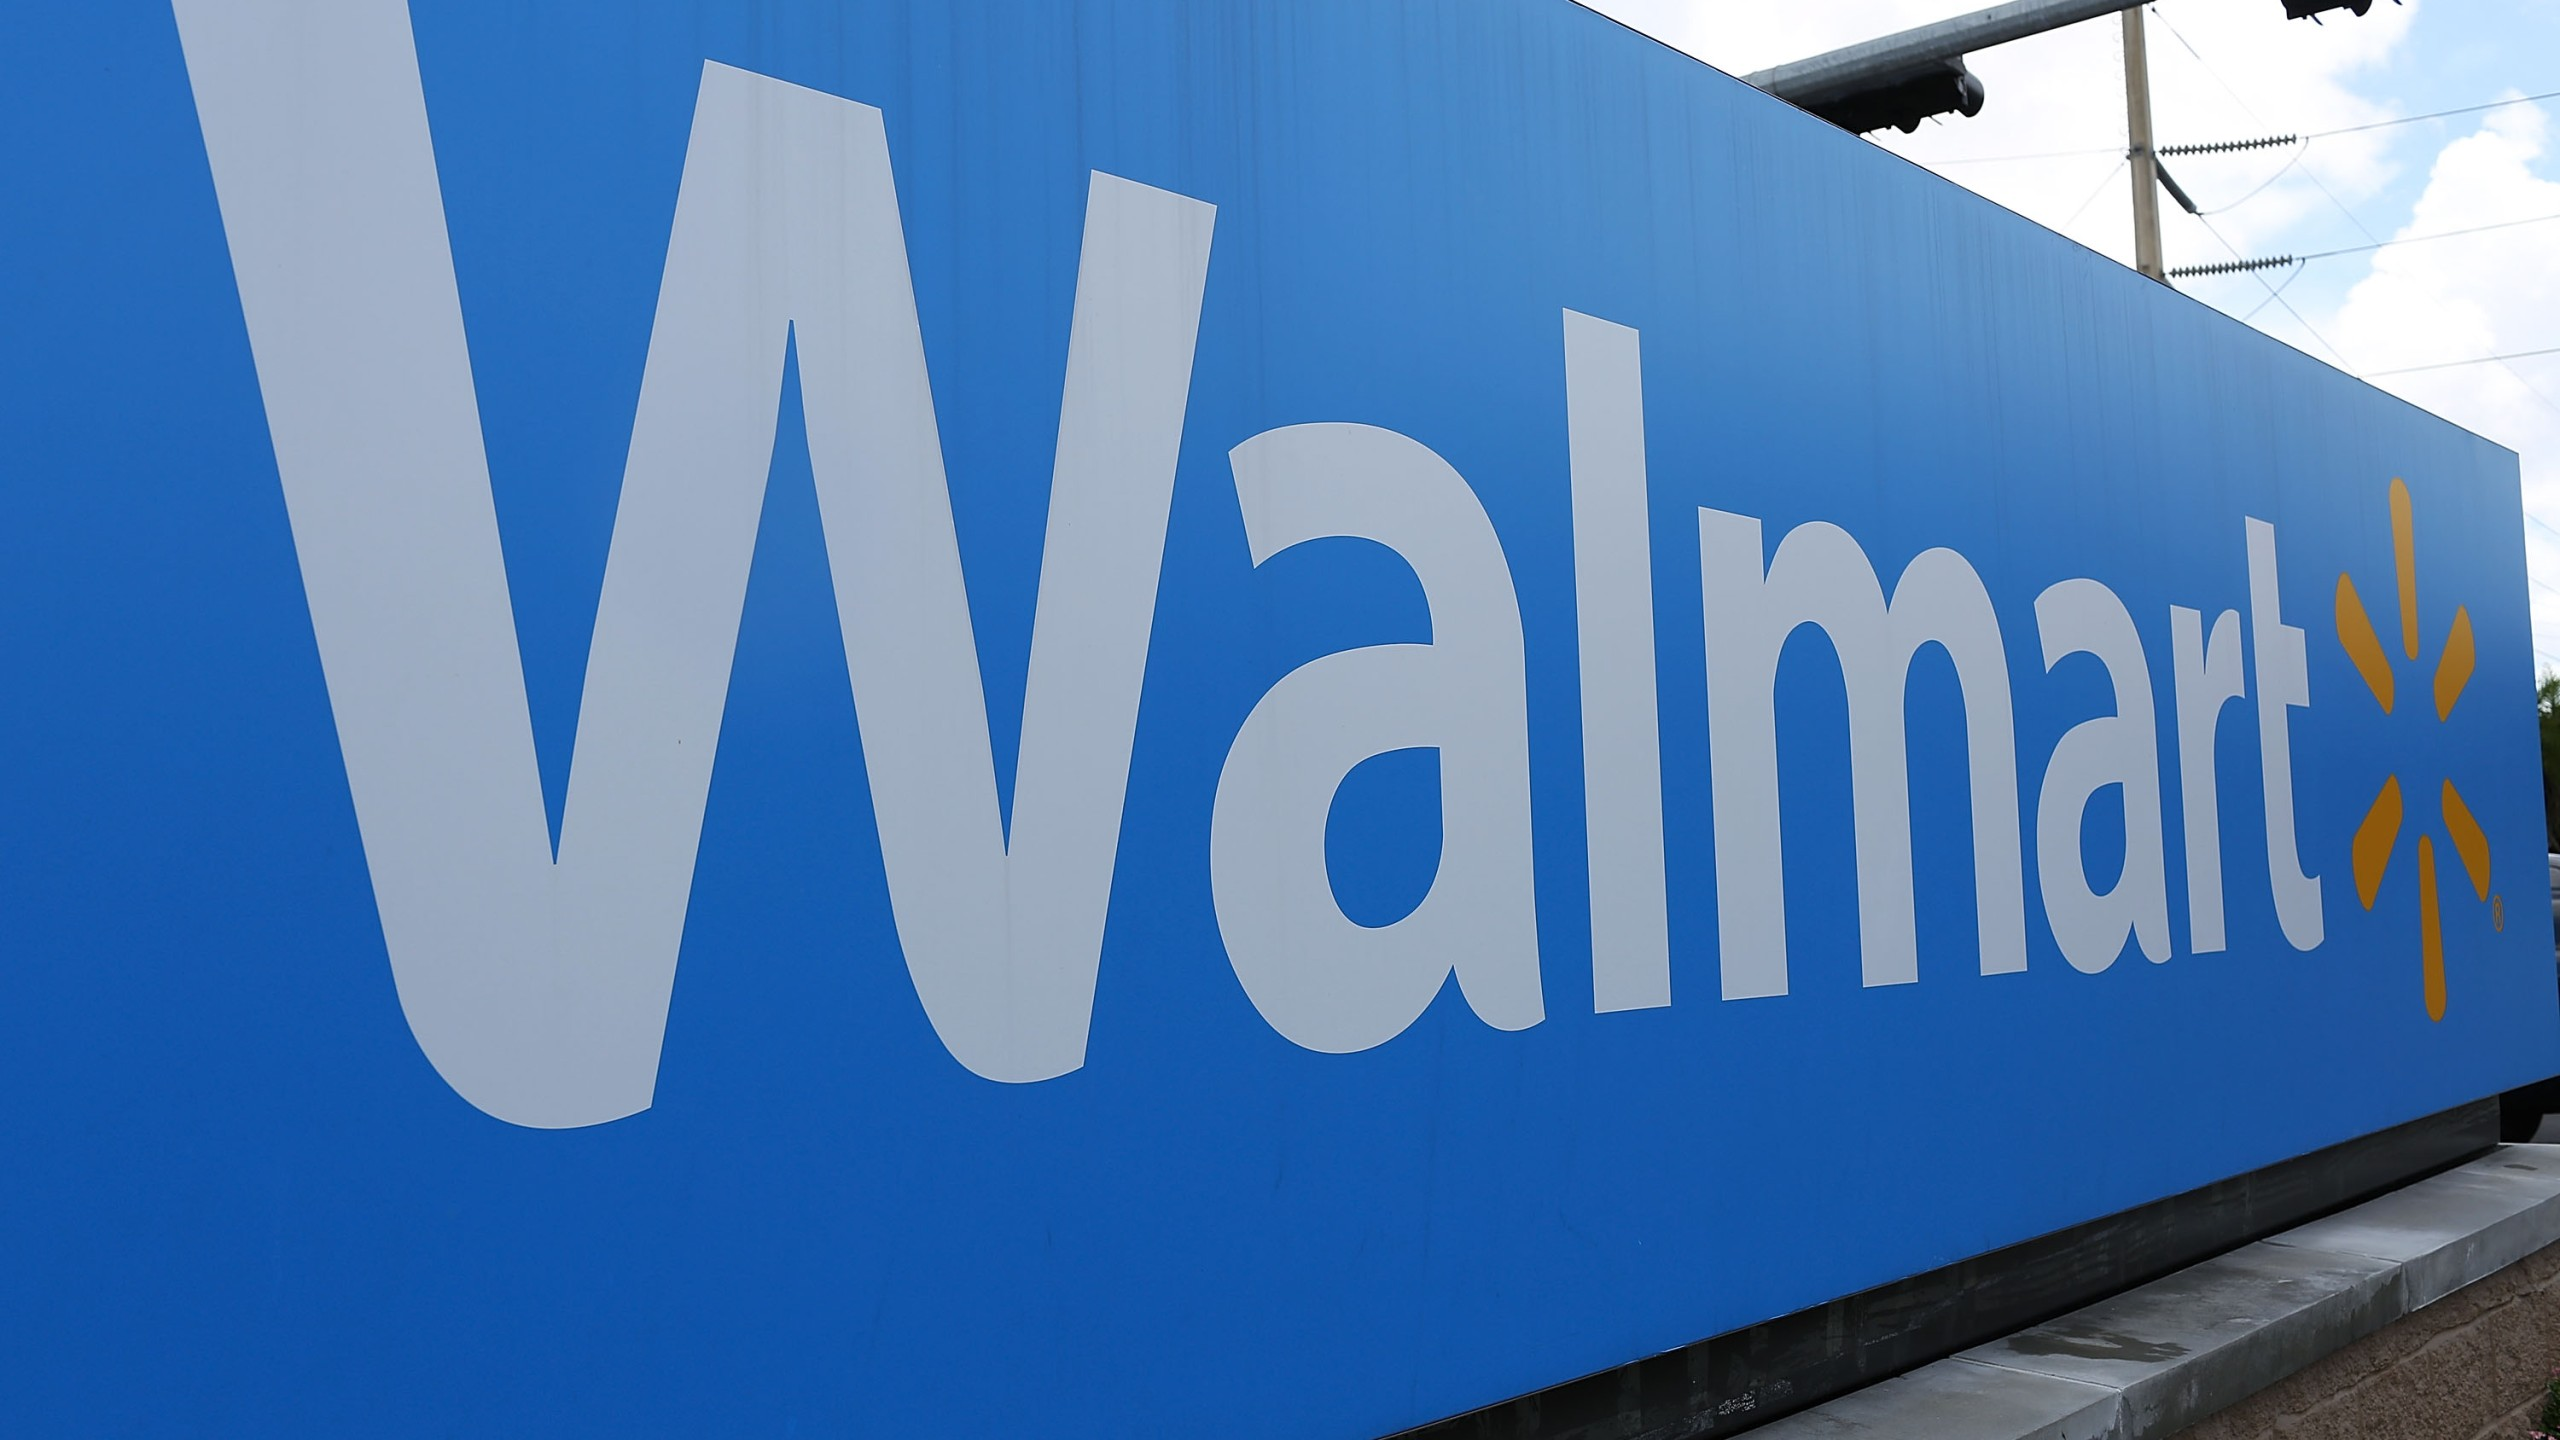 A Walmart sign is seen on August 18, 2015 in Miami, Florida. (Credit: Joe Raedle/Getty Images)